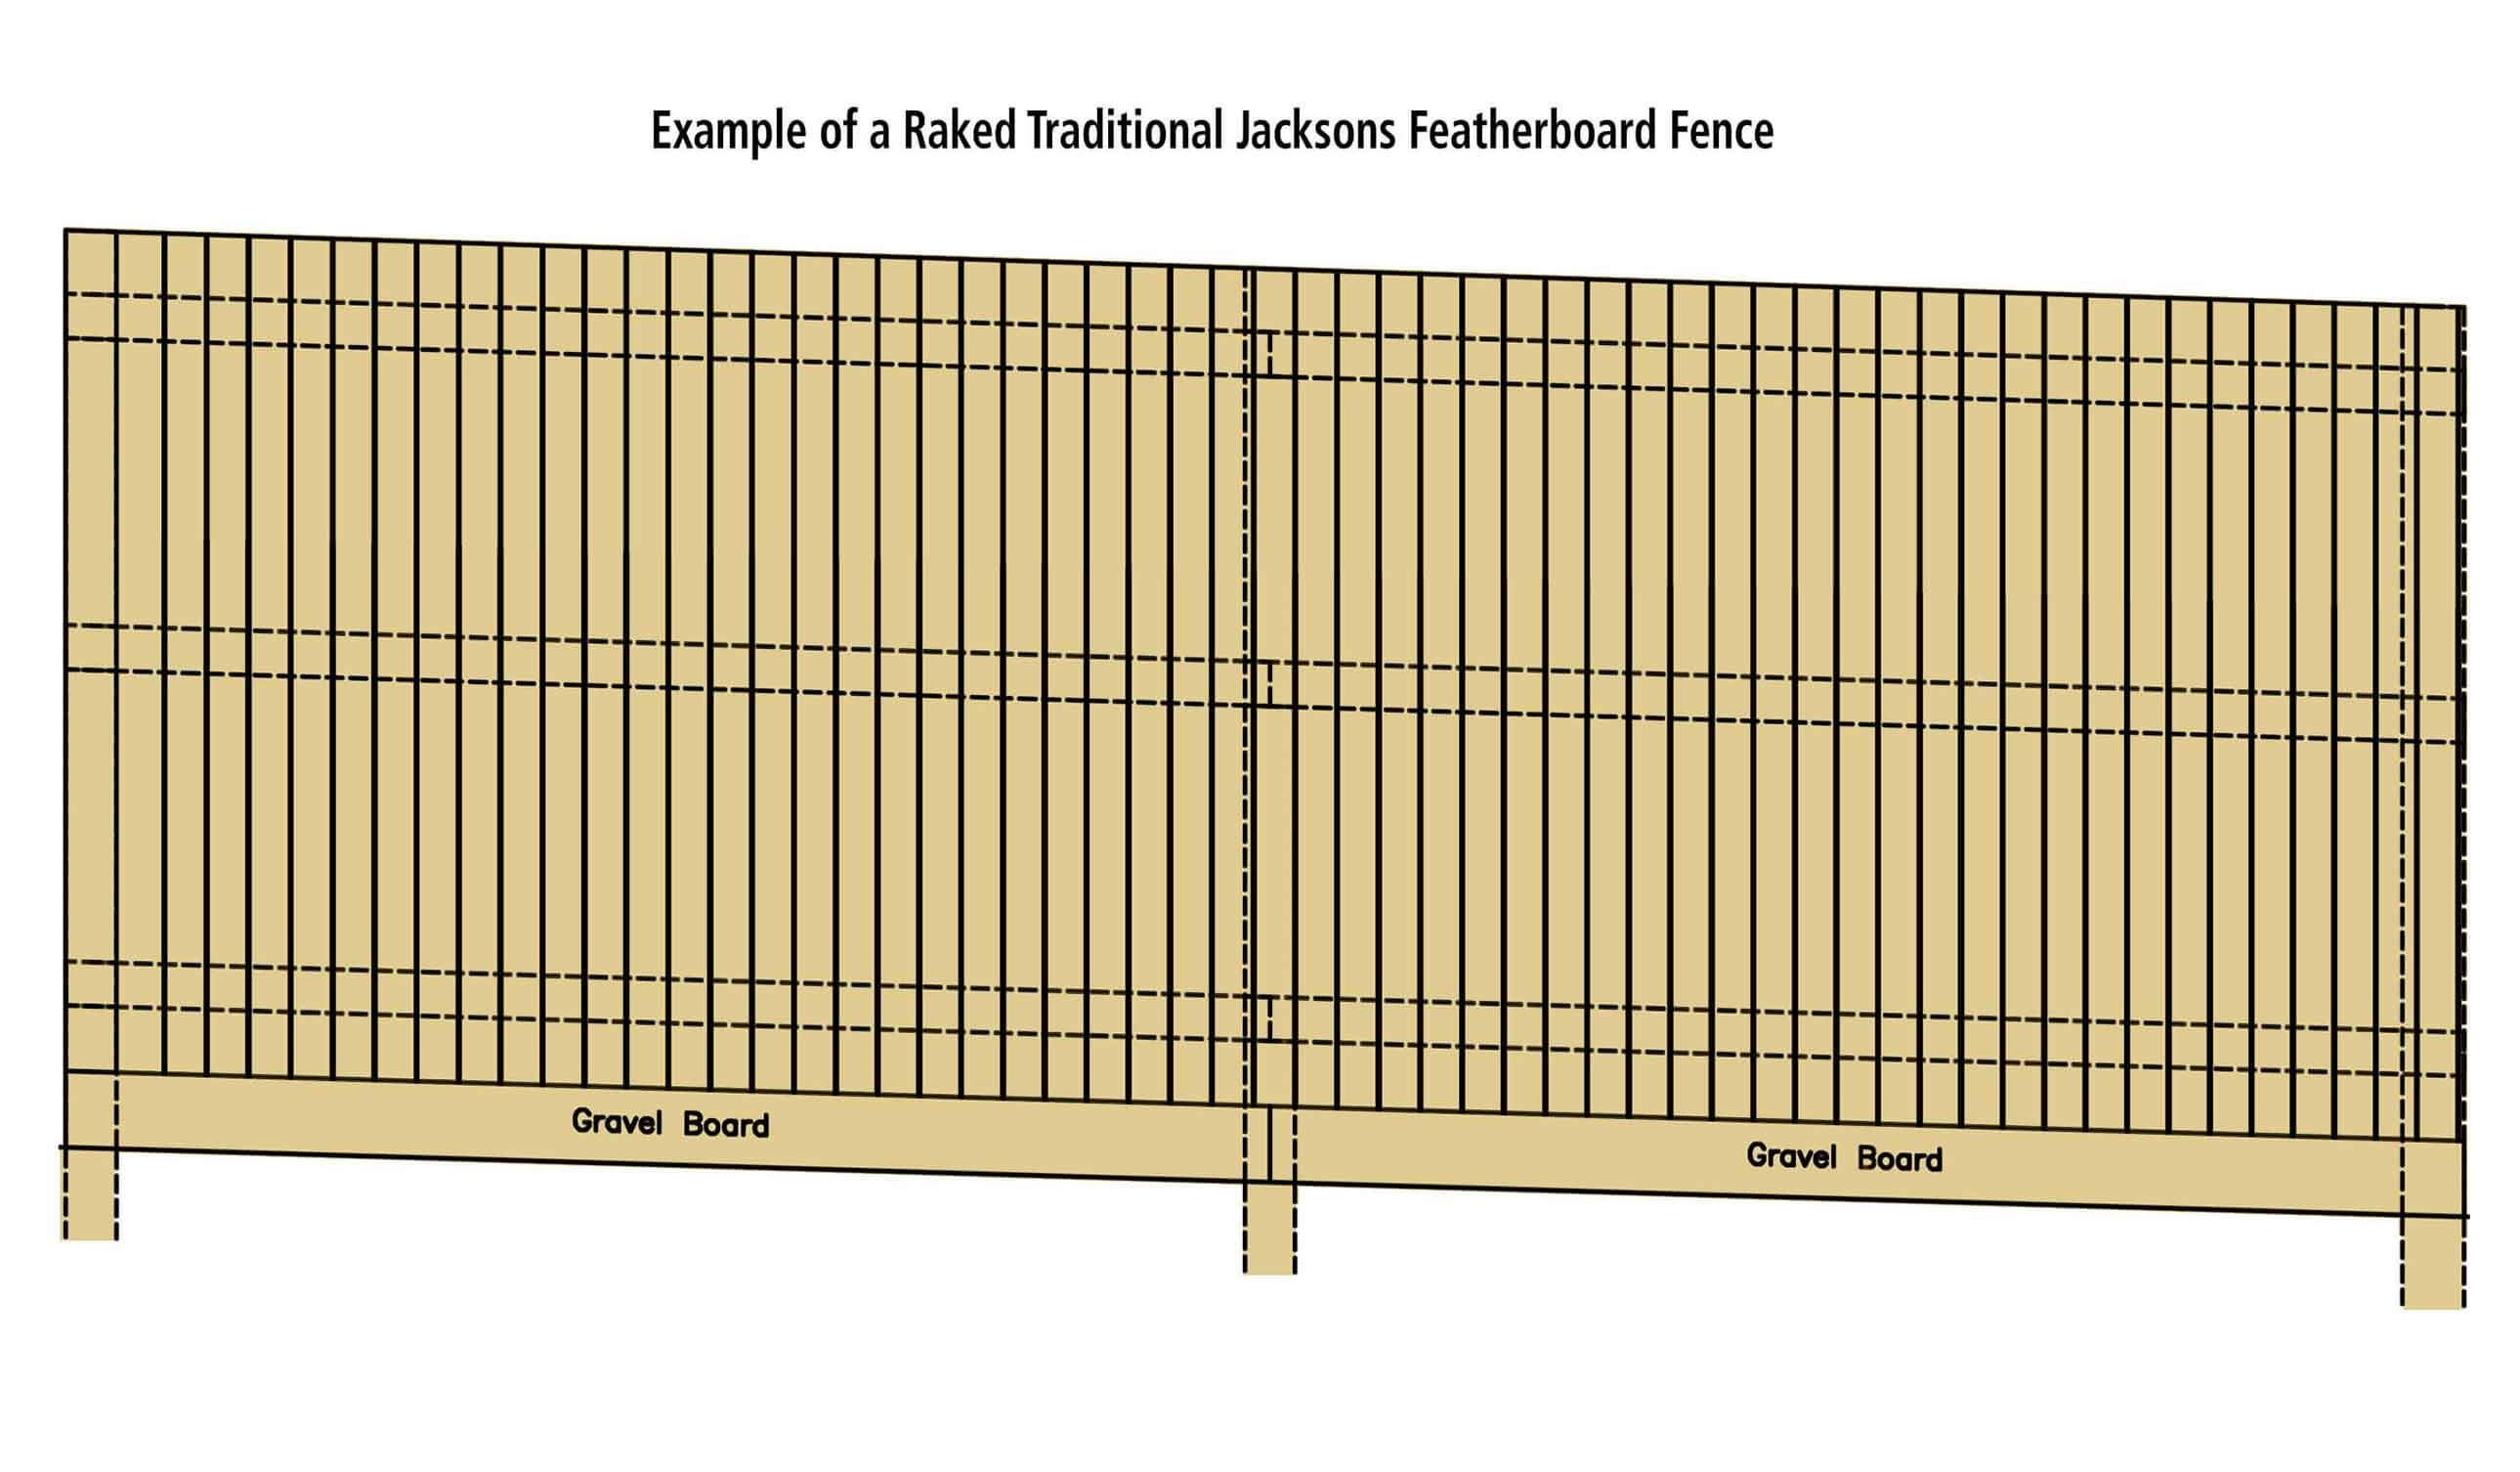 Raked Featherboard fence colour